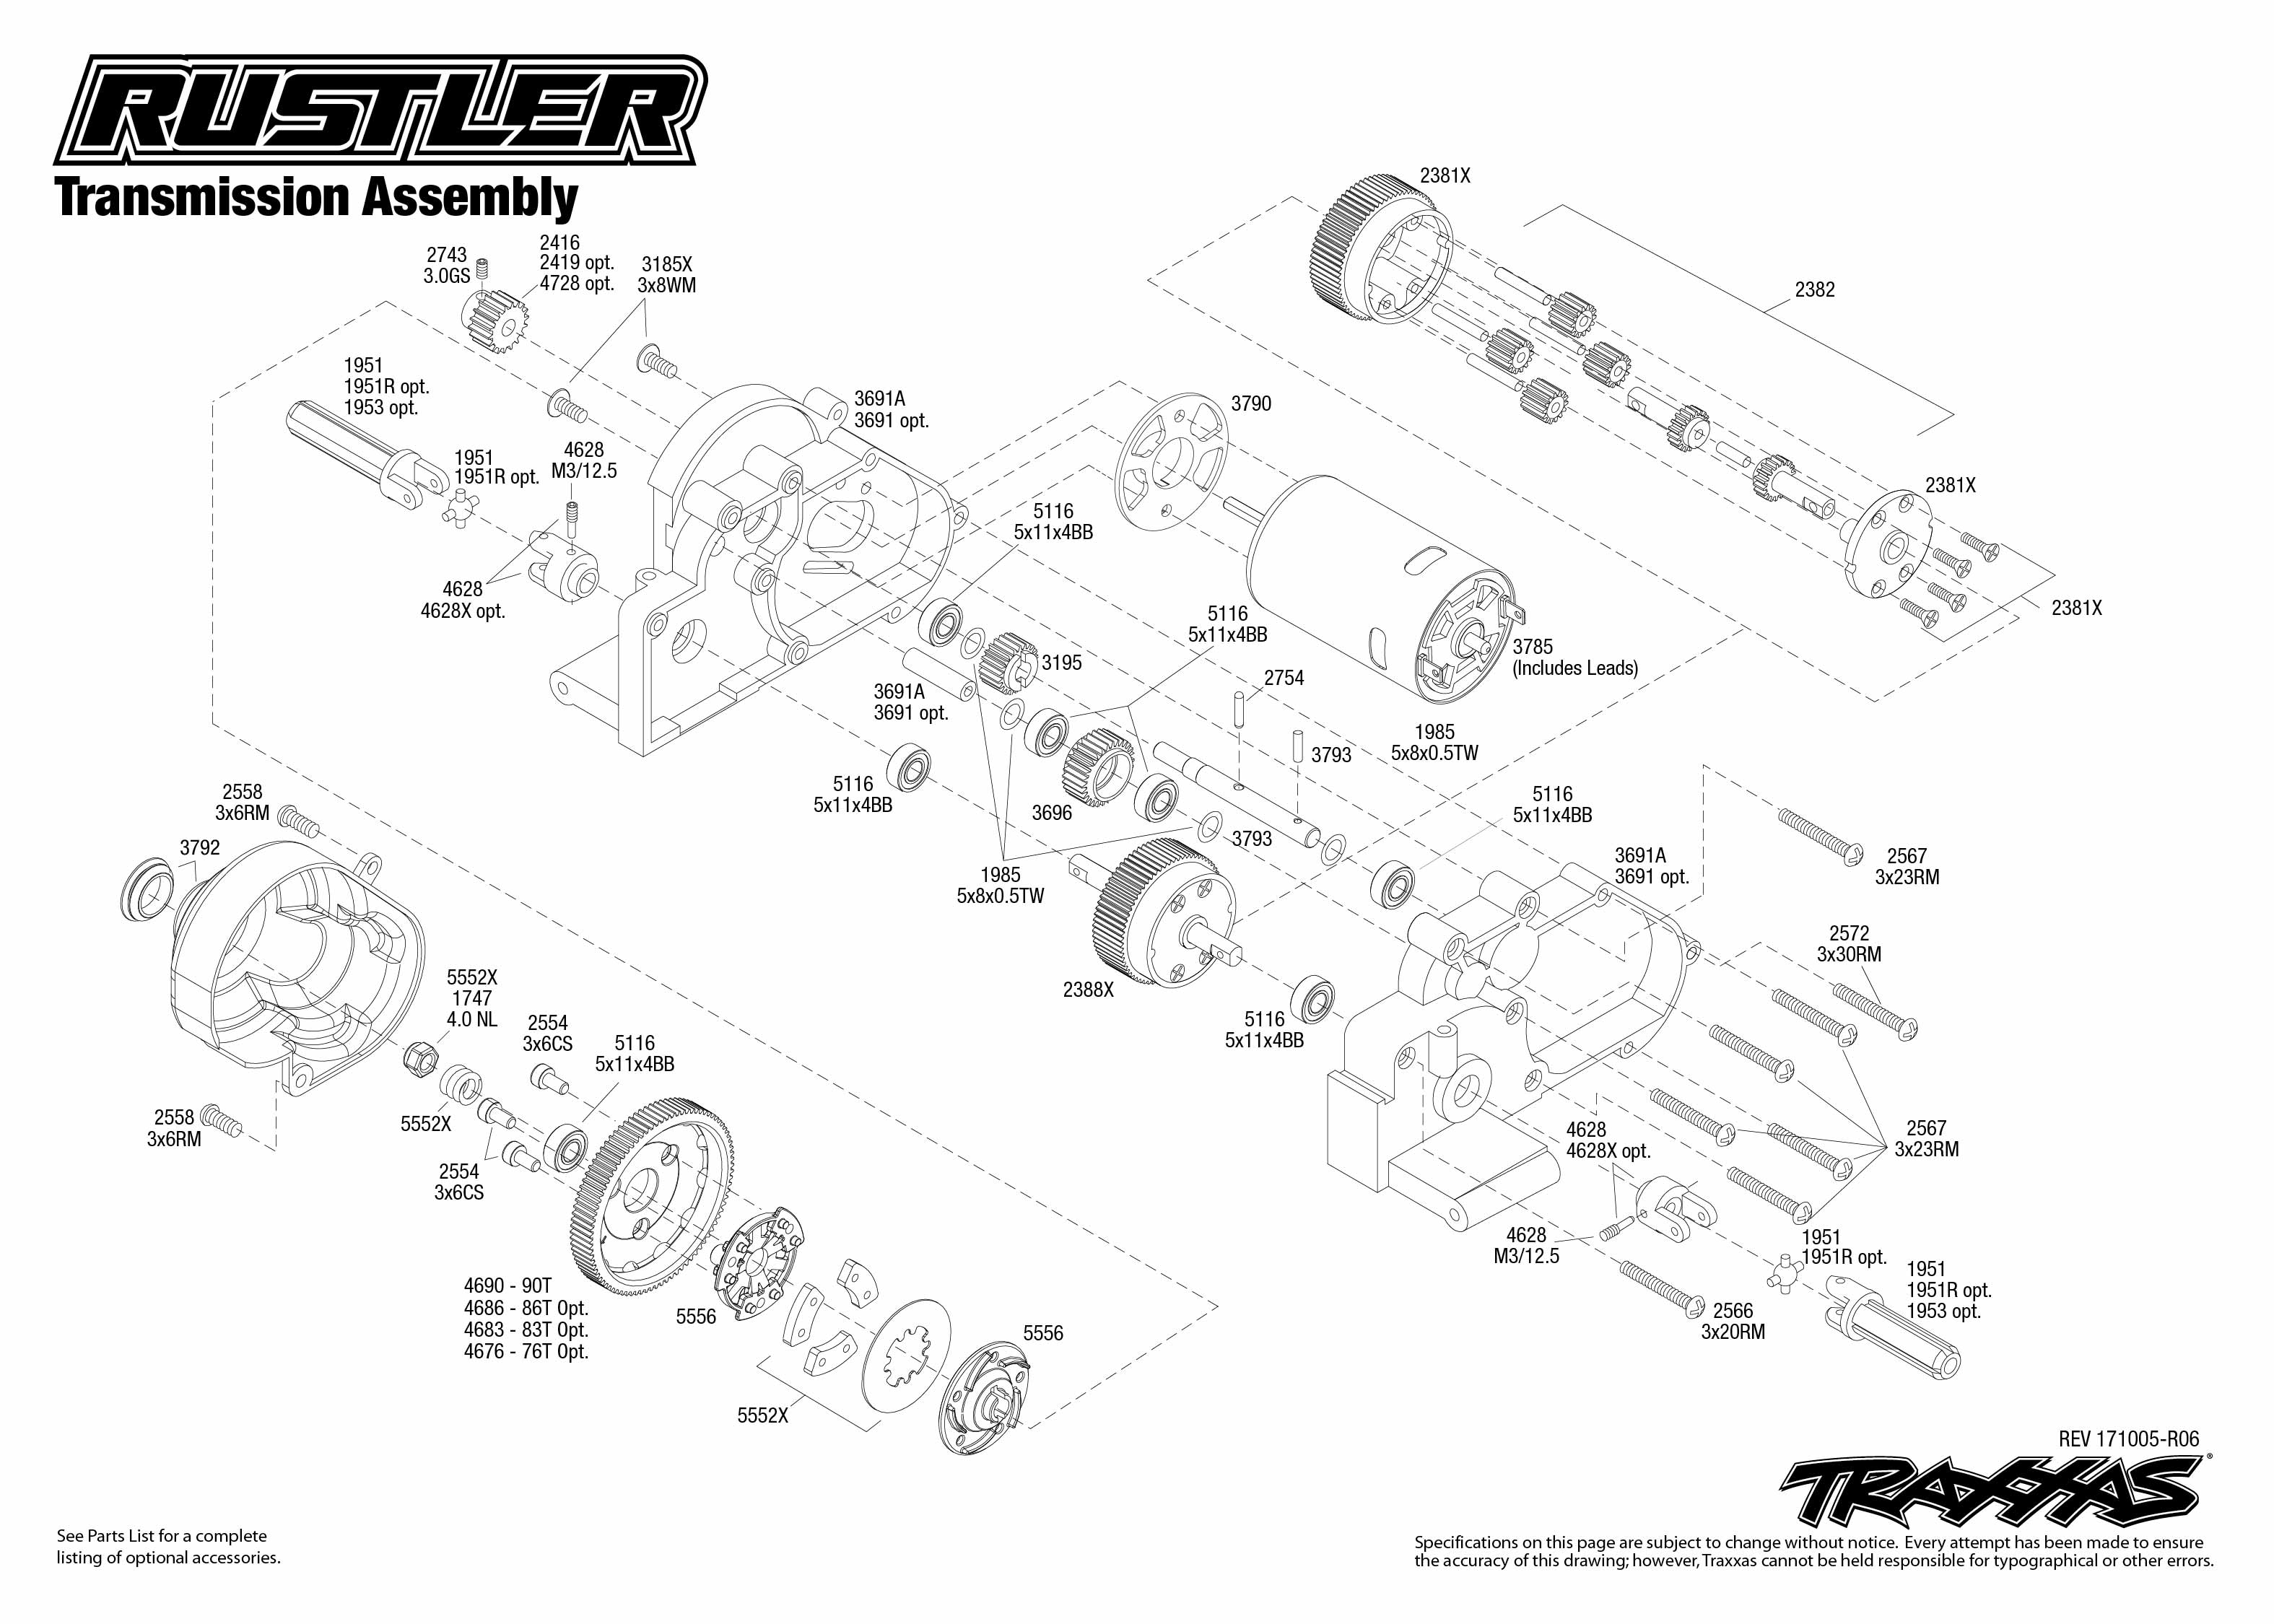 Rustler 1 Transmission Assembly Exploded View